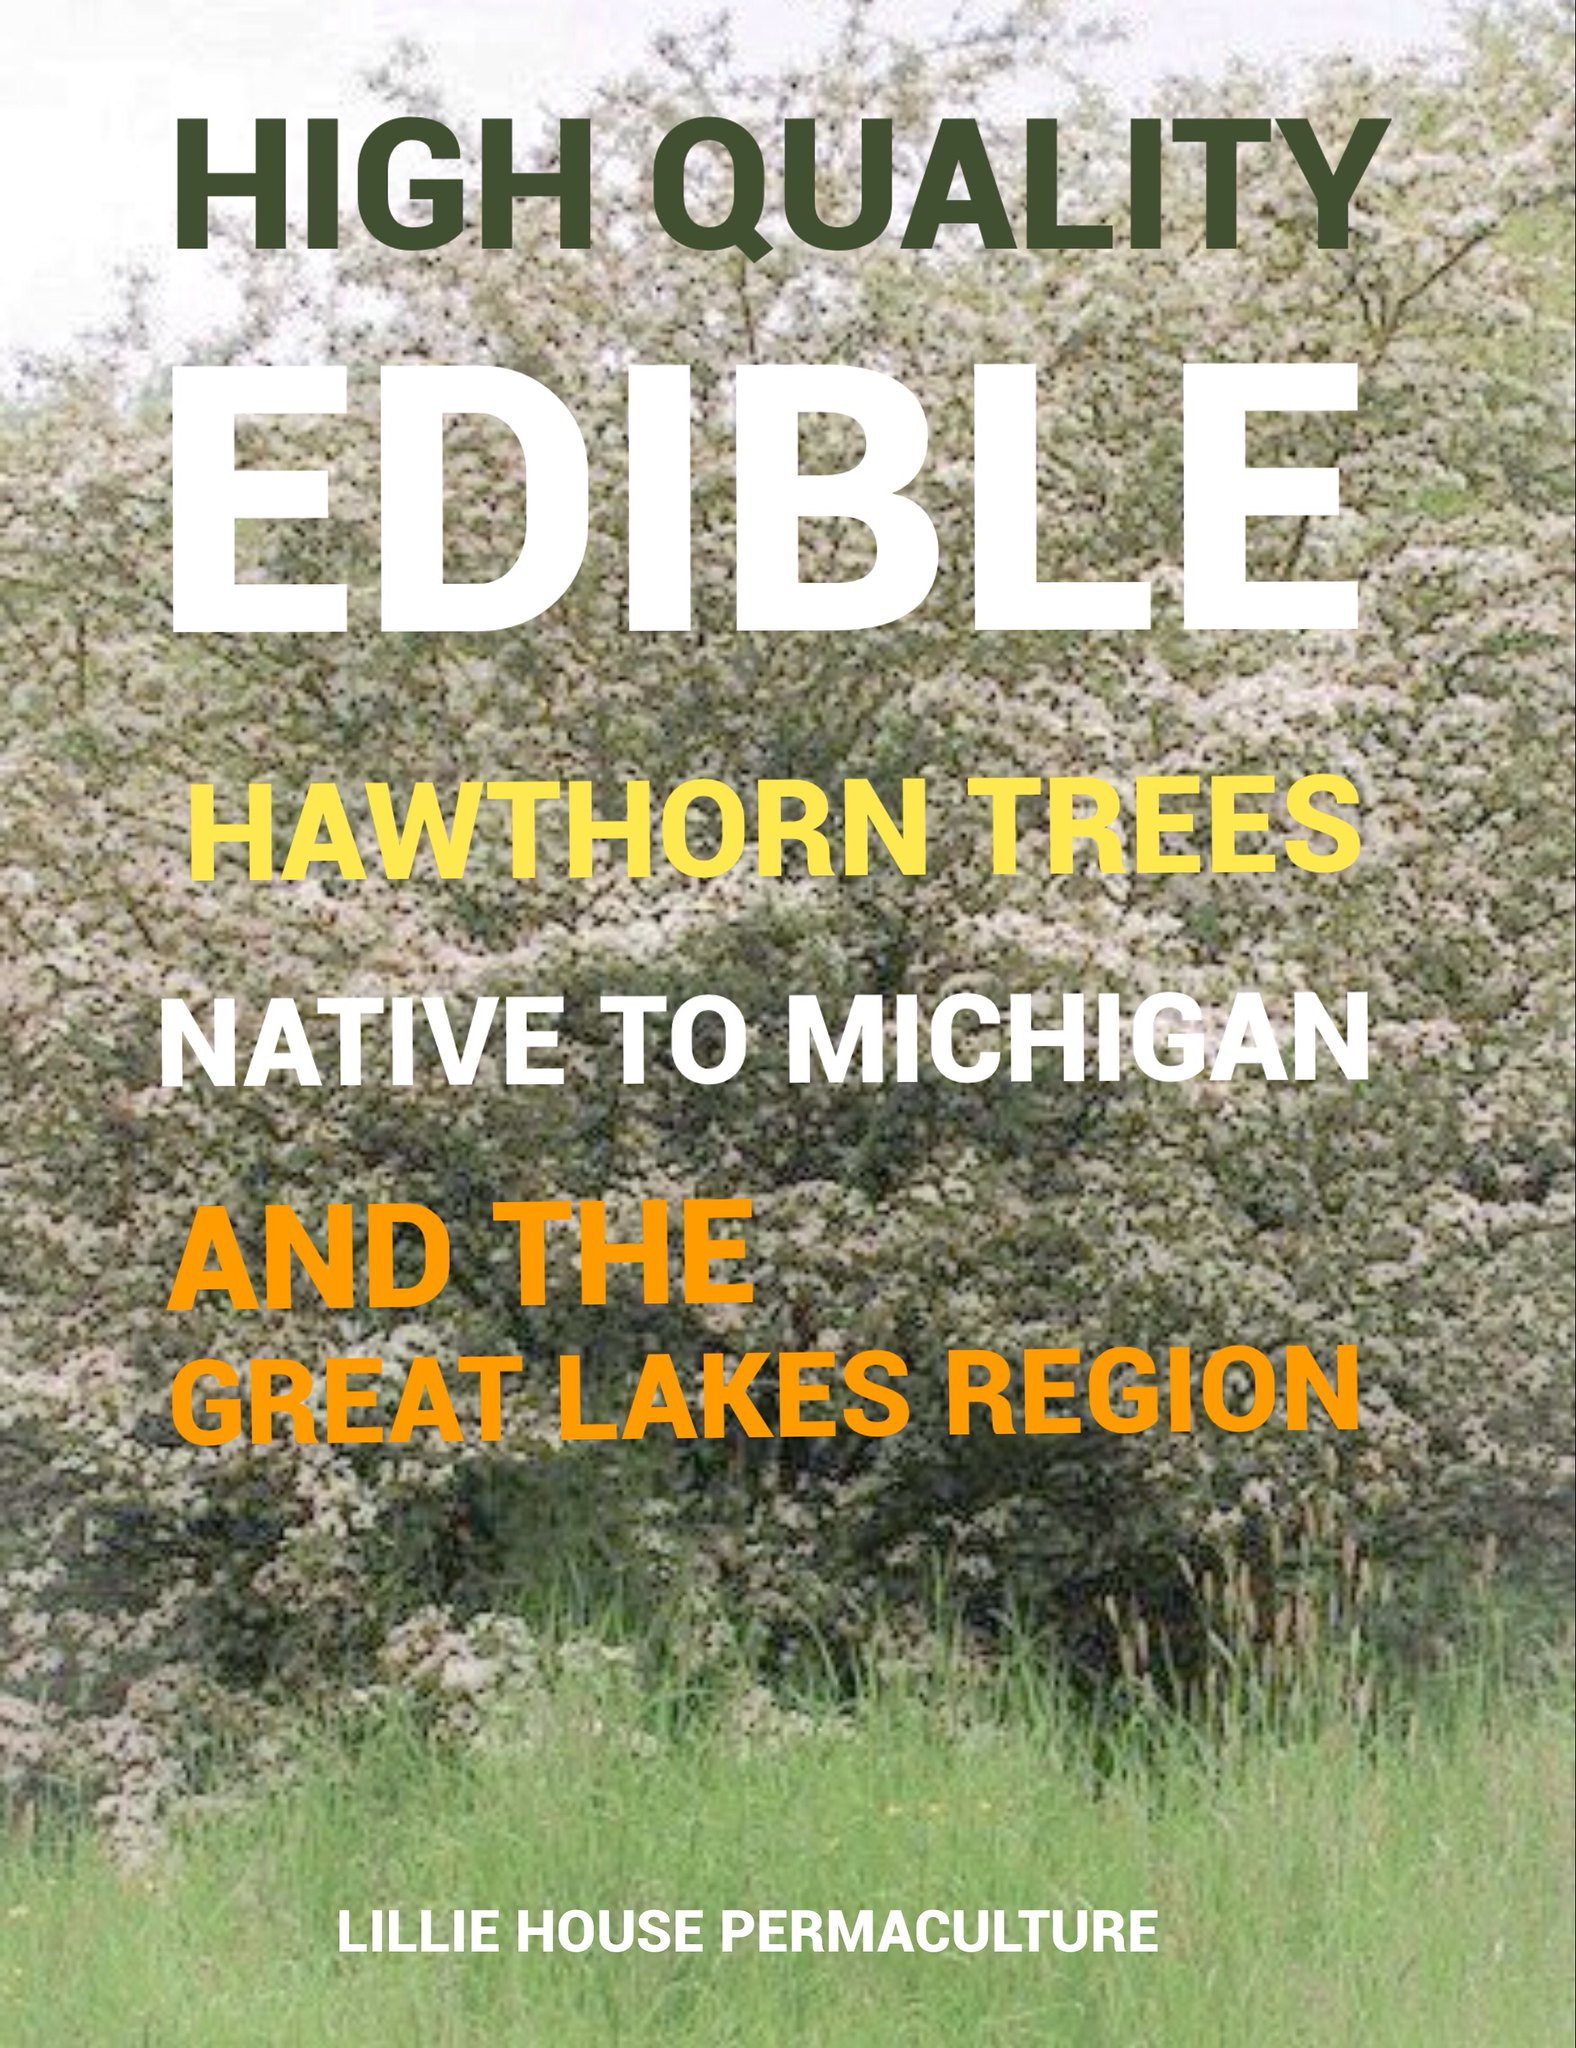 High Quailty Edible Native Hawthorns for the Great Lakes Region